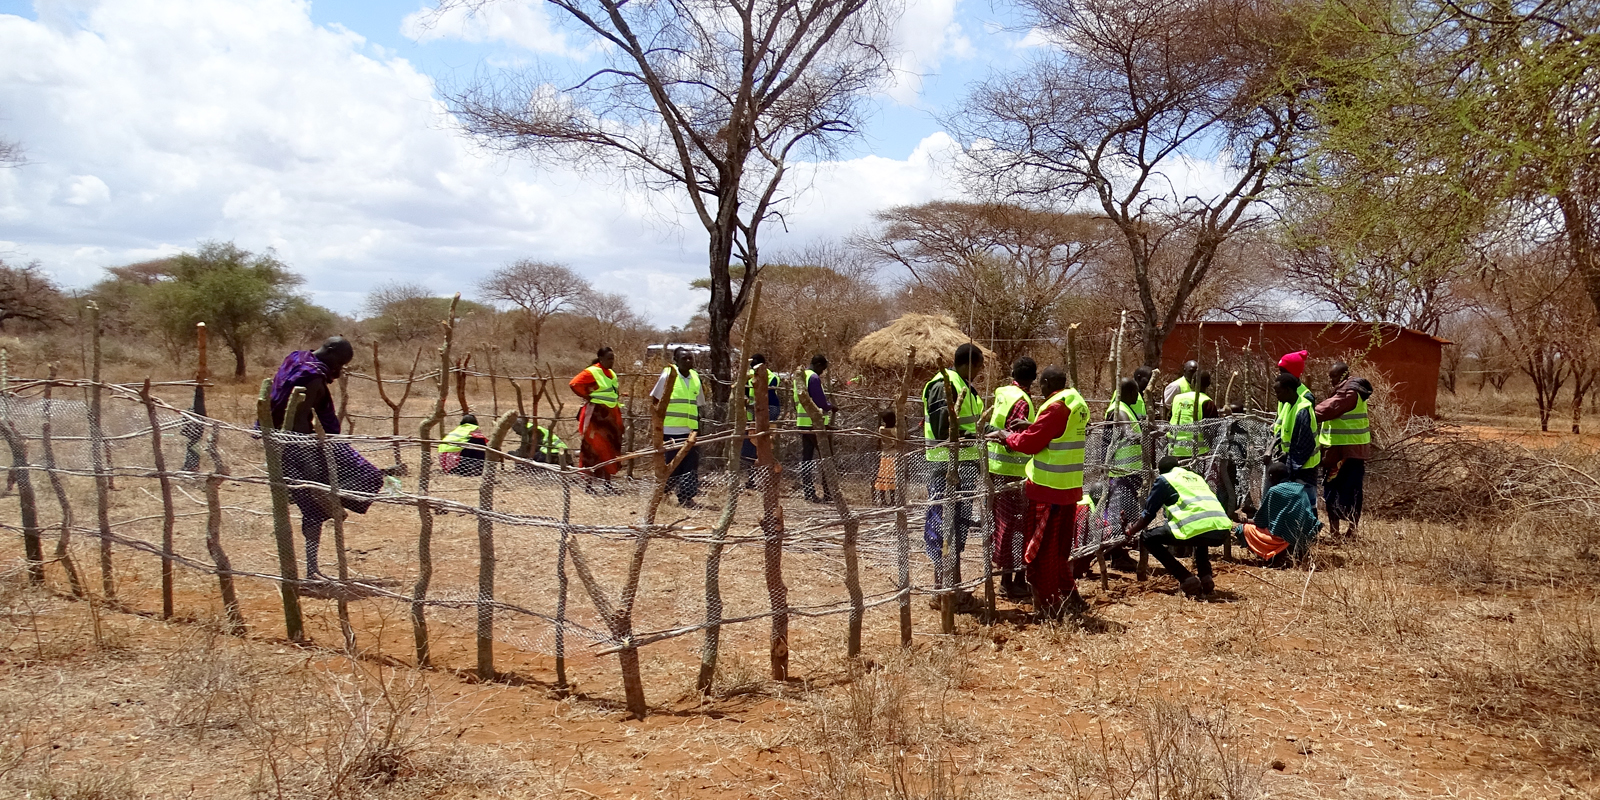 Members of MAWO and villagers building fenced-in areas for protection of donkeys